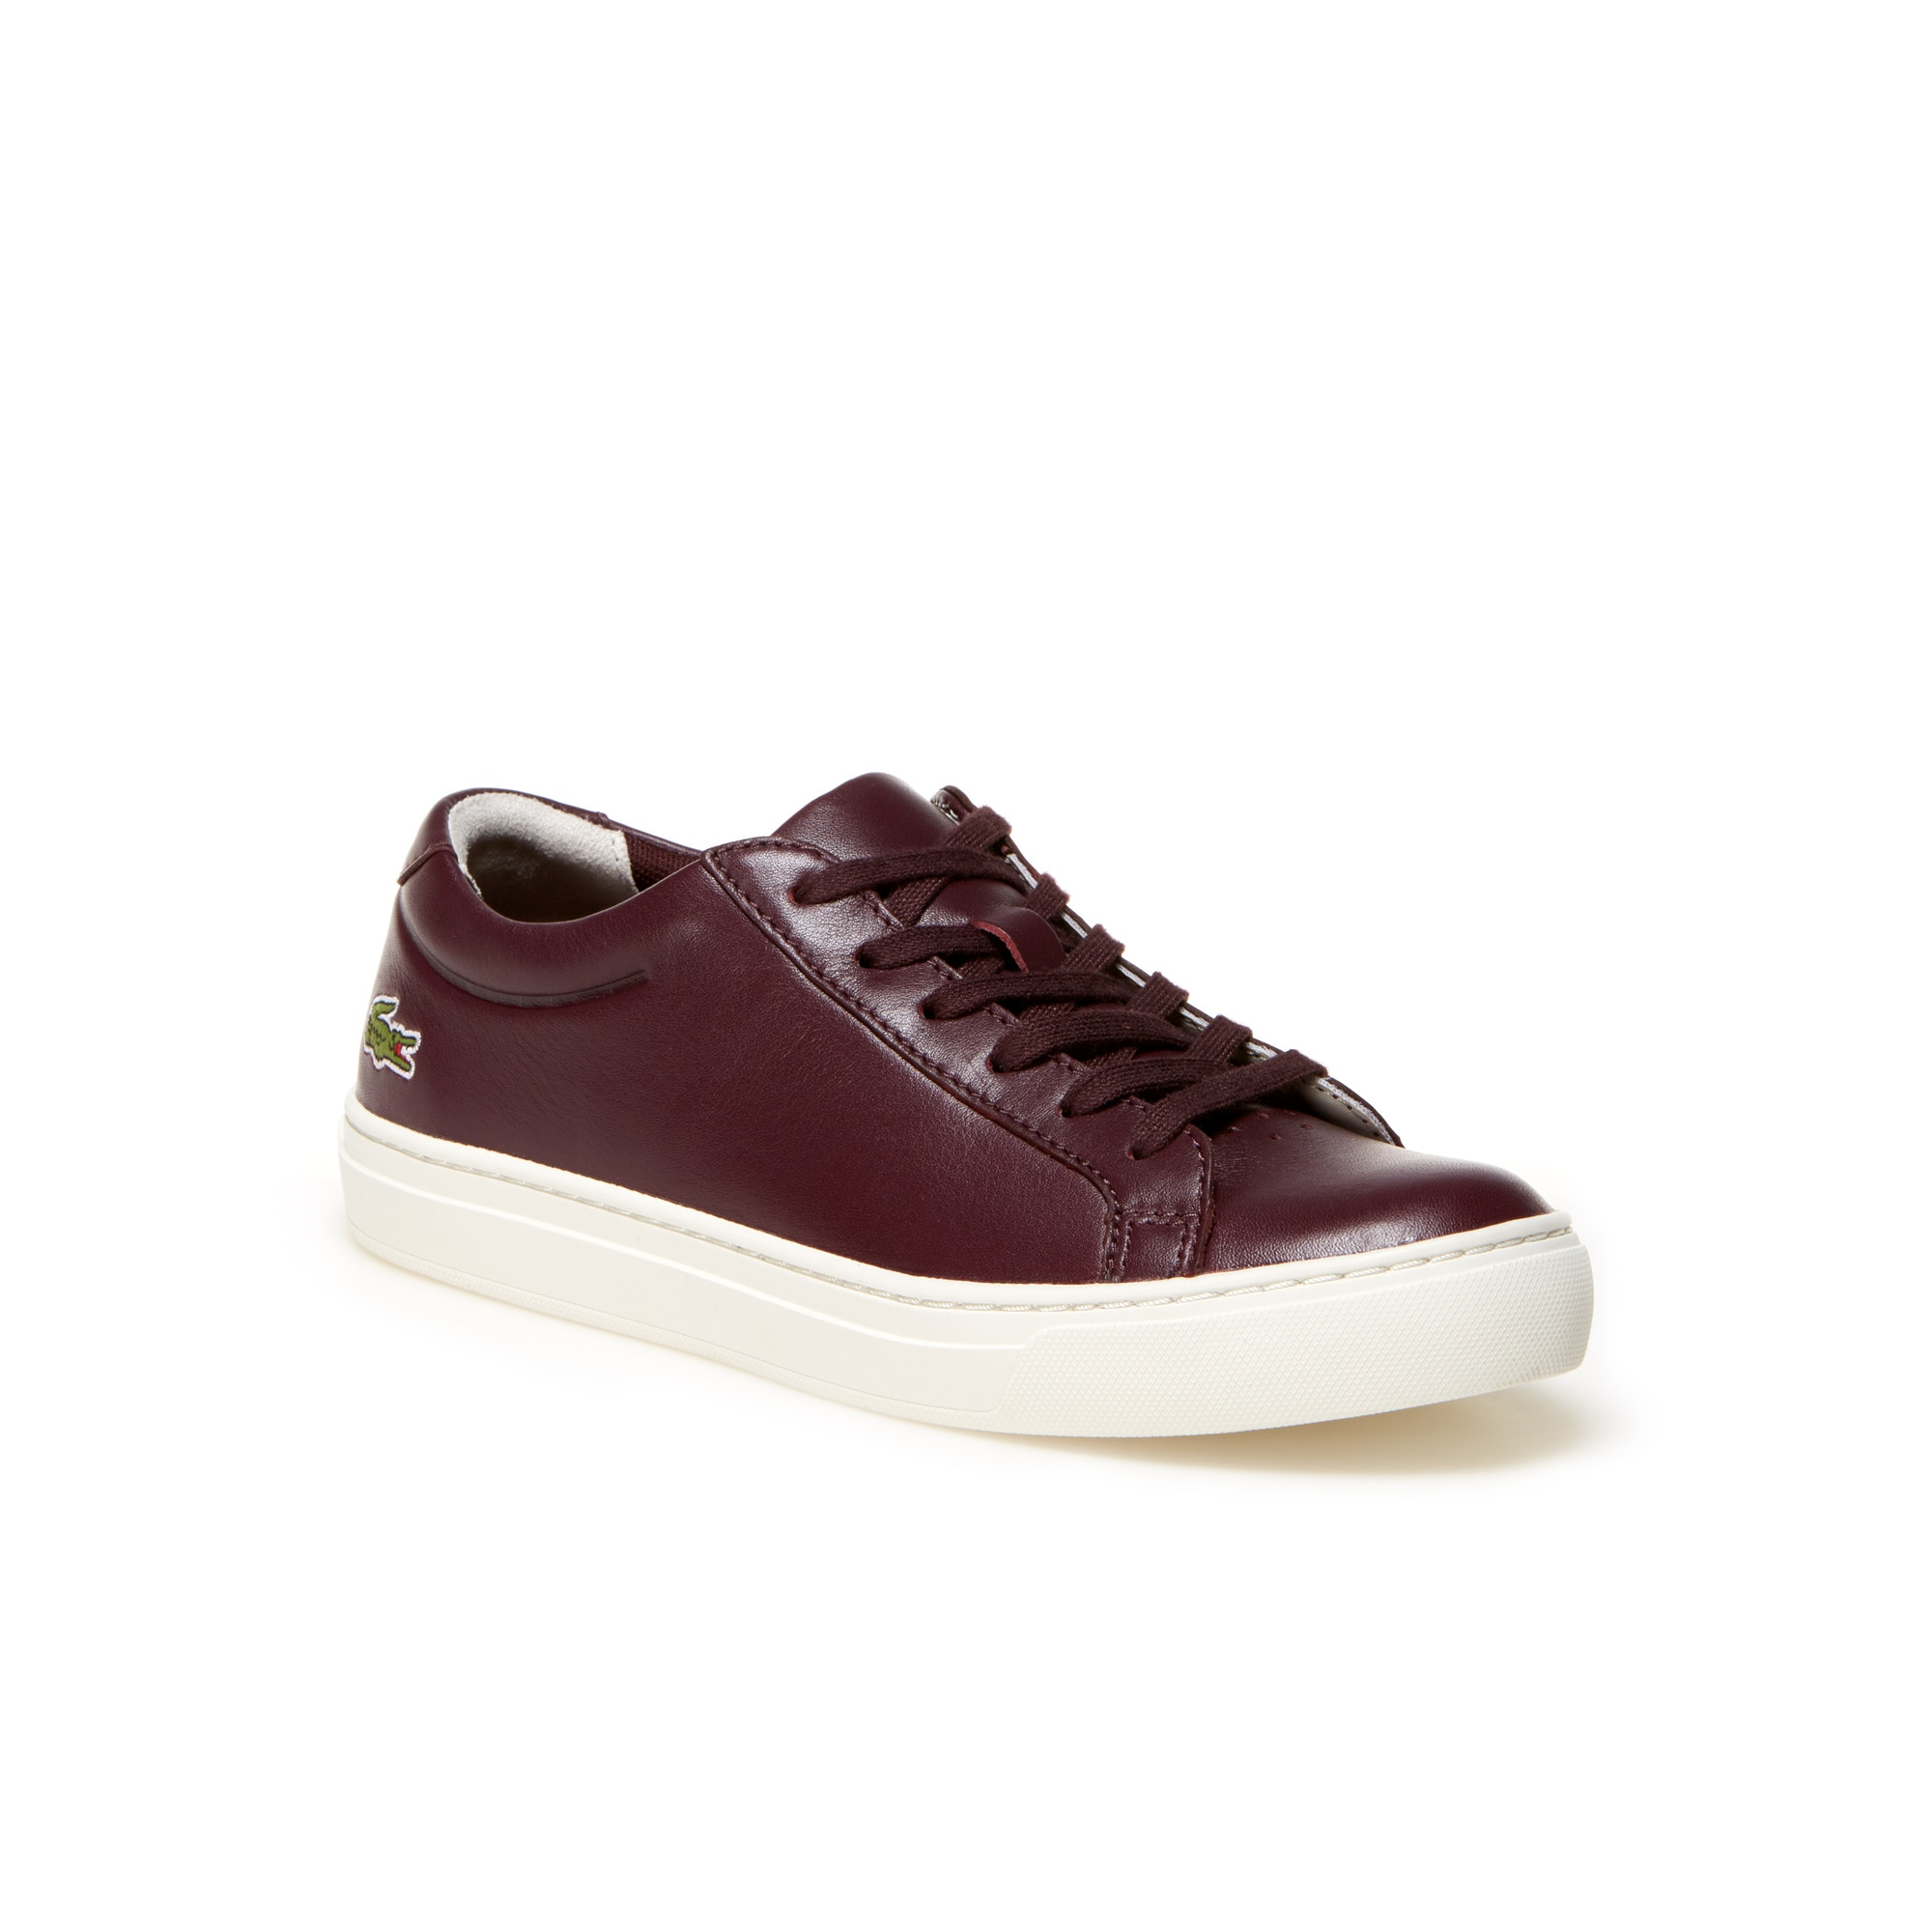 Women's L.12.12 Leather Sneakers